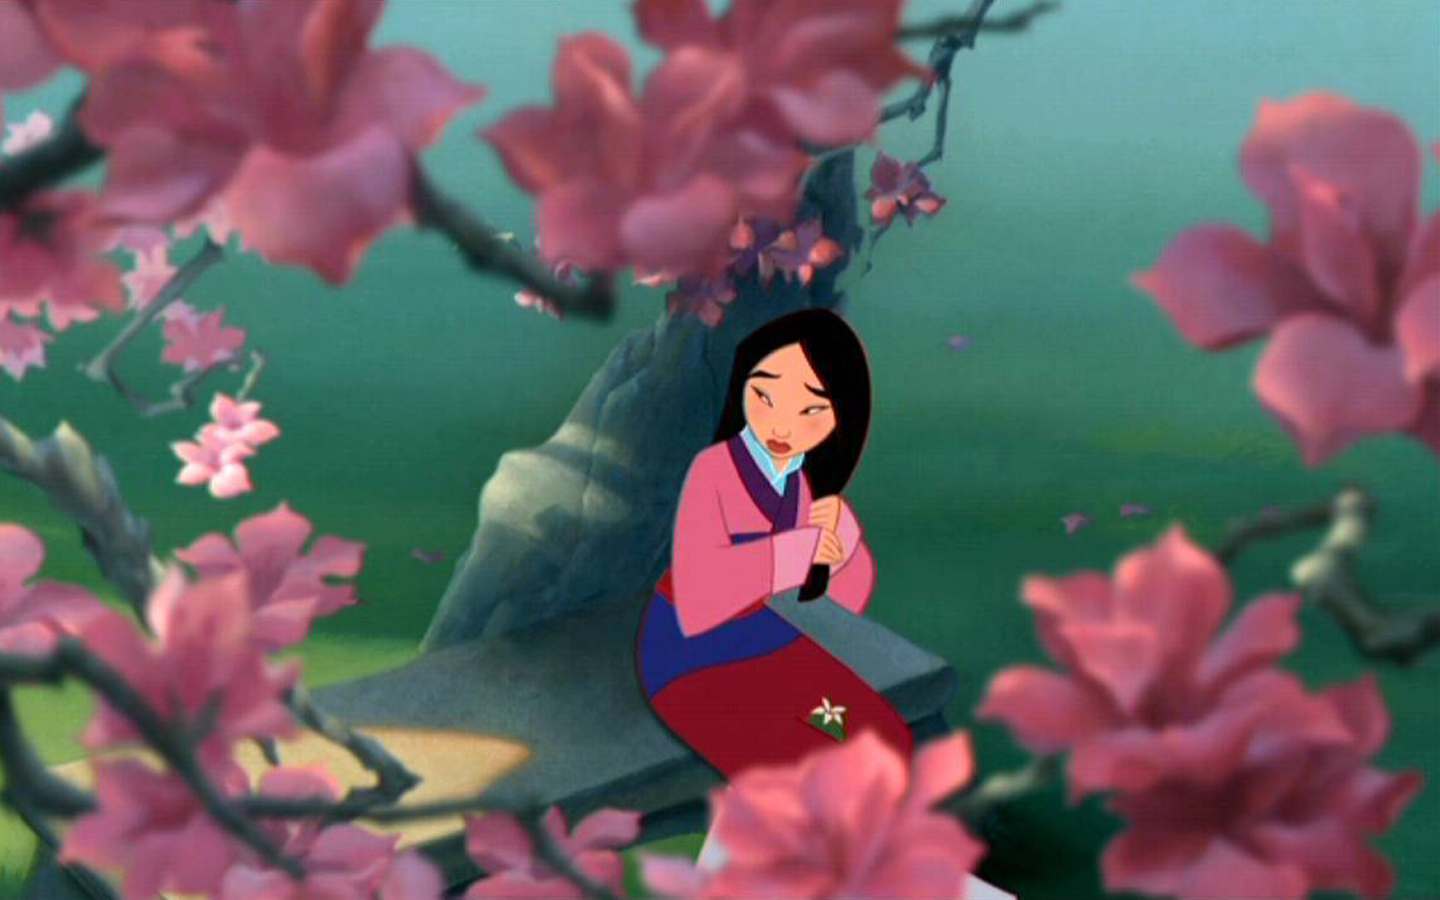 Mulan Sad In The Garden   muIans Wallpaper 39399913 1440x900